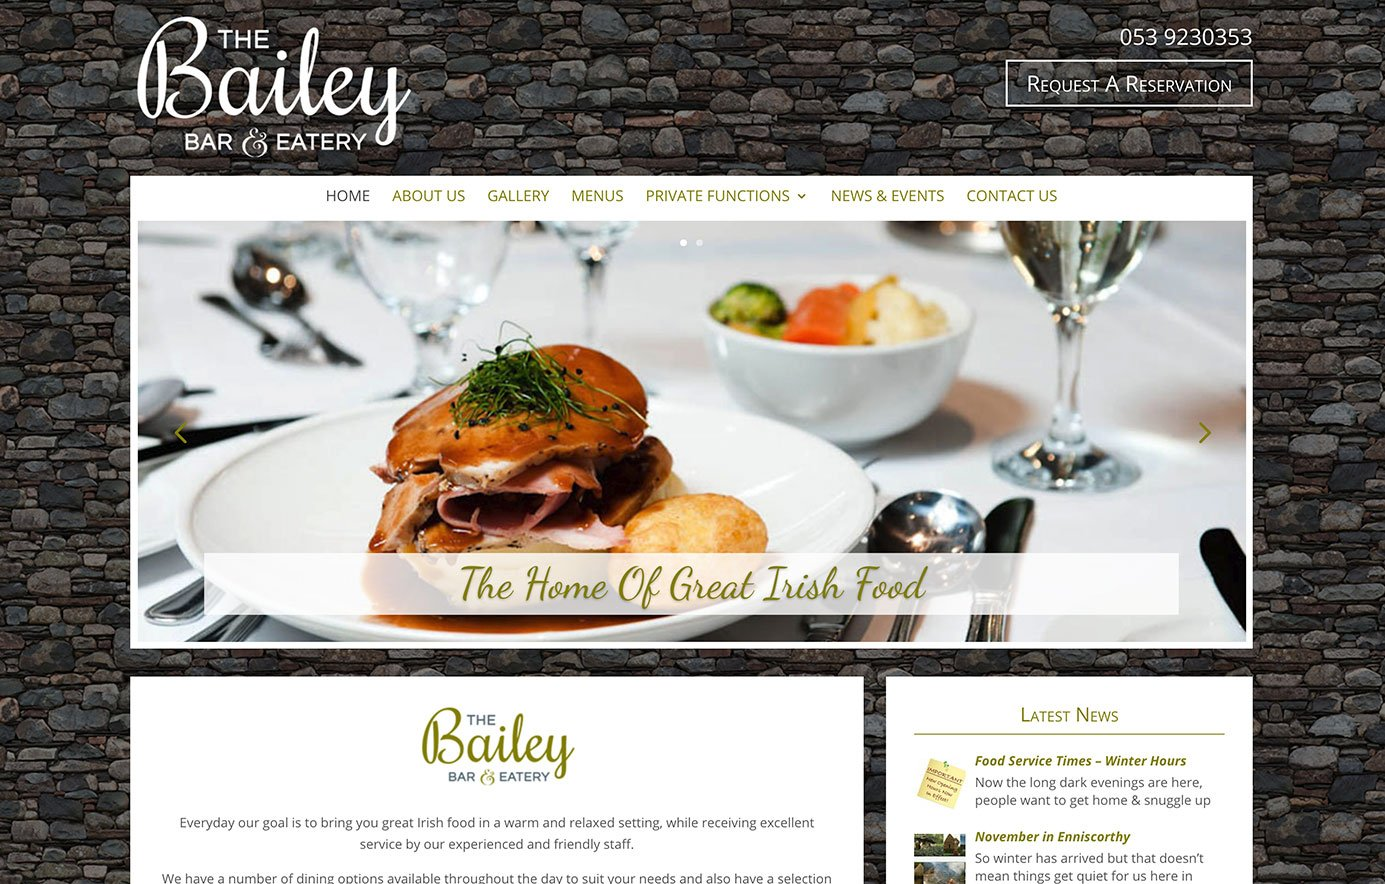 Restaurant-Website-Design-The-Bailey-Featured1